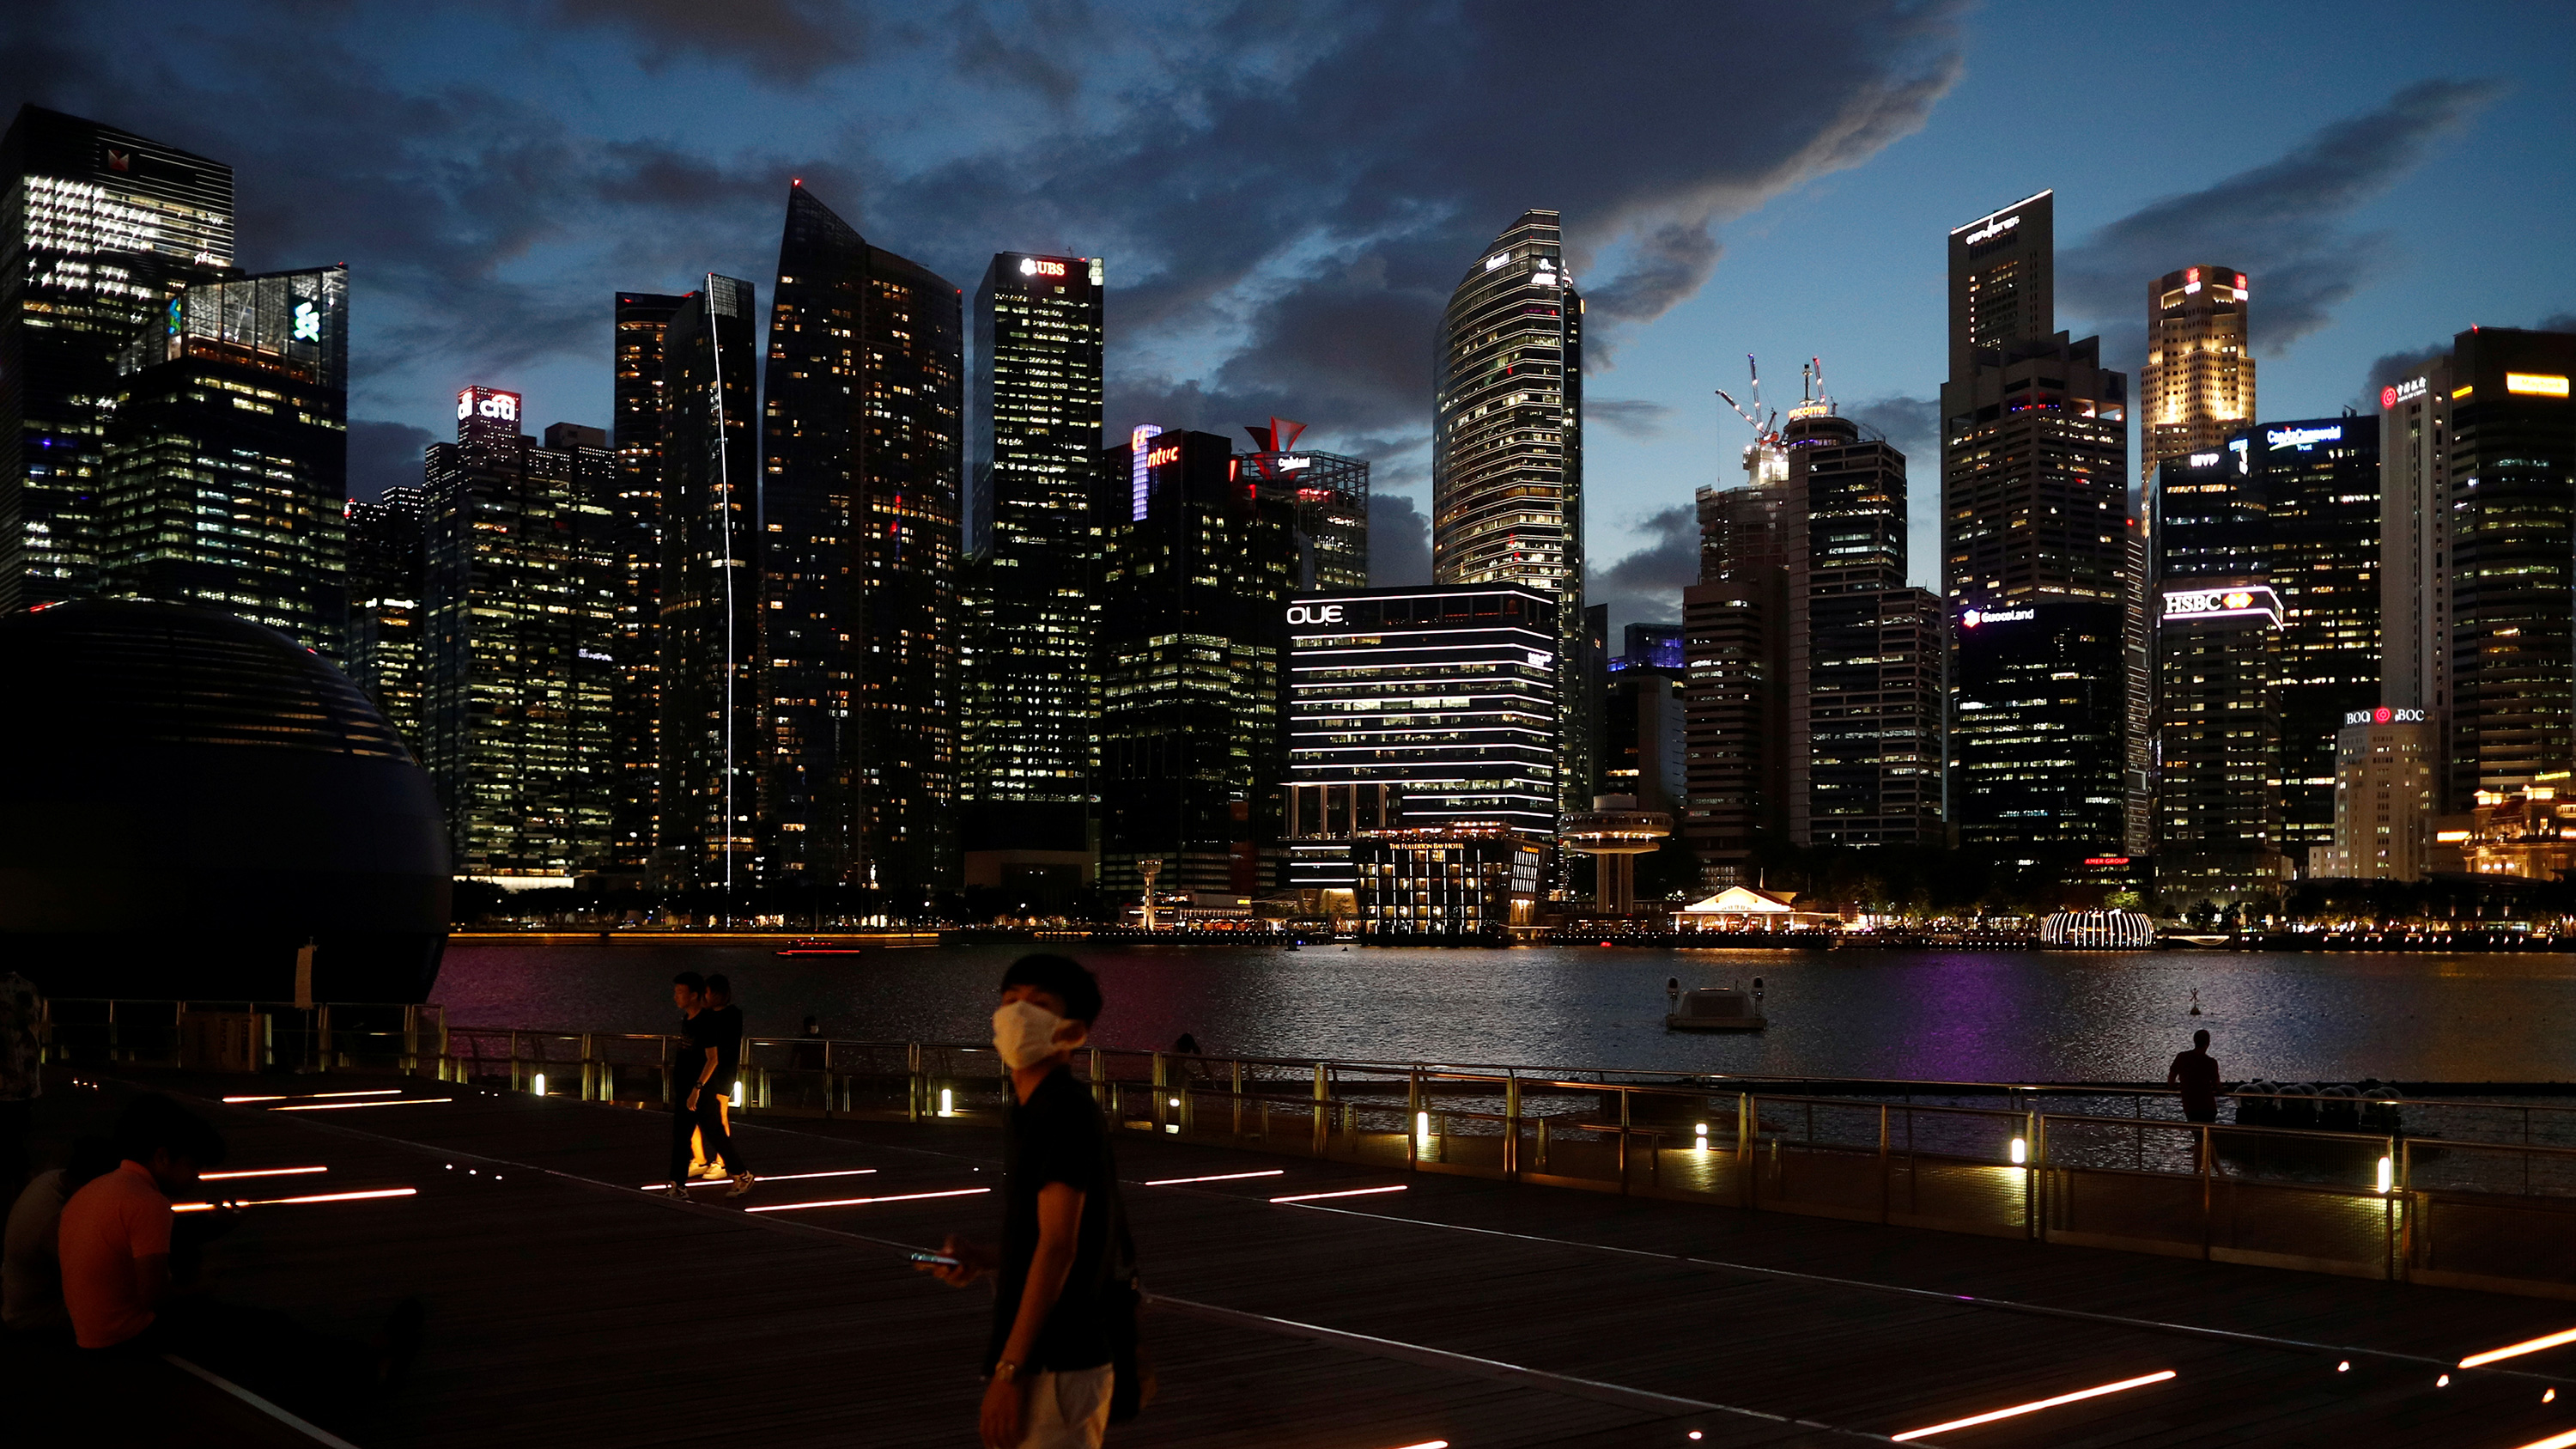 This is a stunning photo showing the Singapore skyline at dusk from across the water.